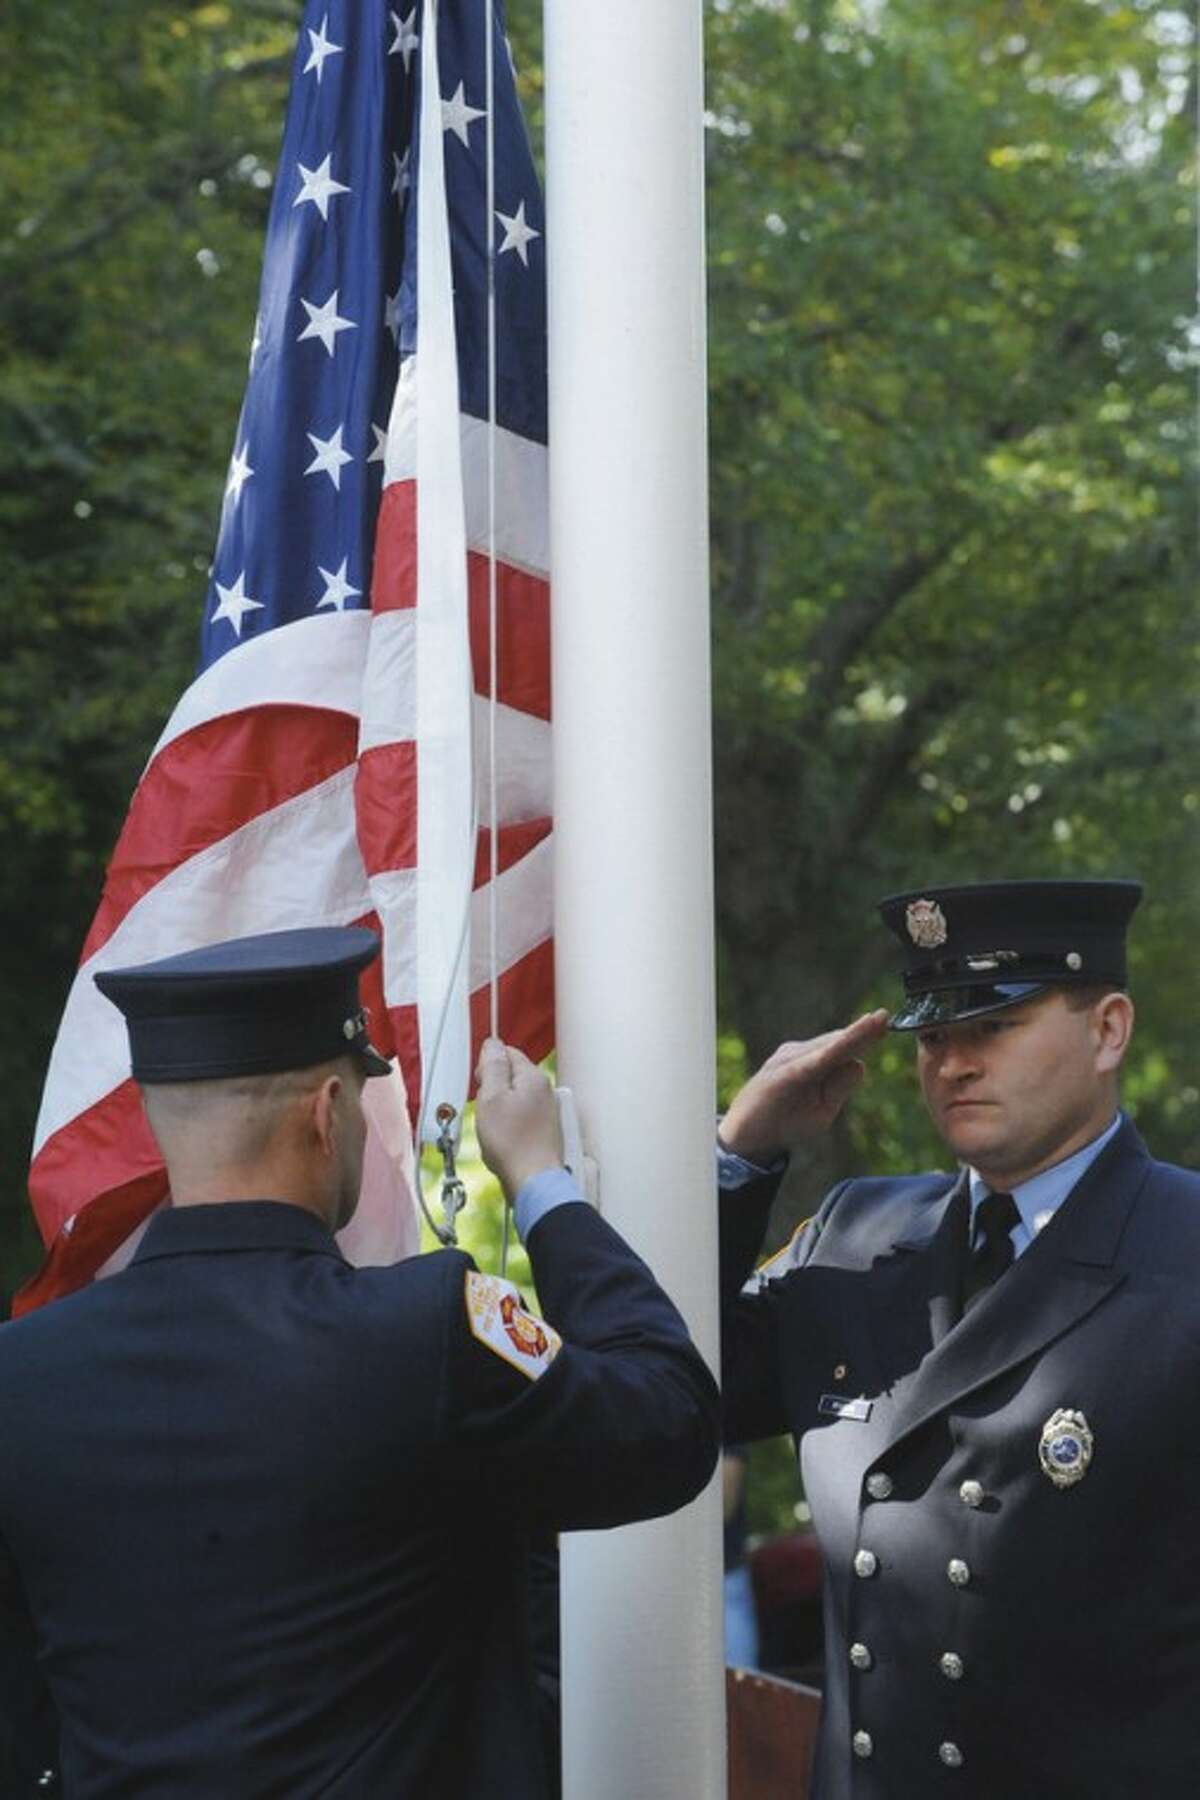 Wilton Fire Department holds a remembrance ceremony Sunday for Wilton residents killed the September 11th attacks. hour photo/matthew vinci